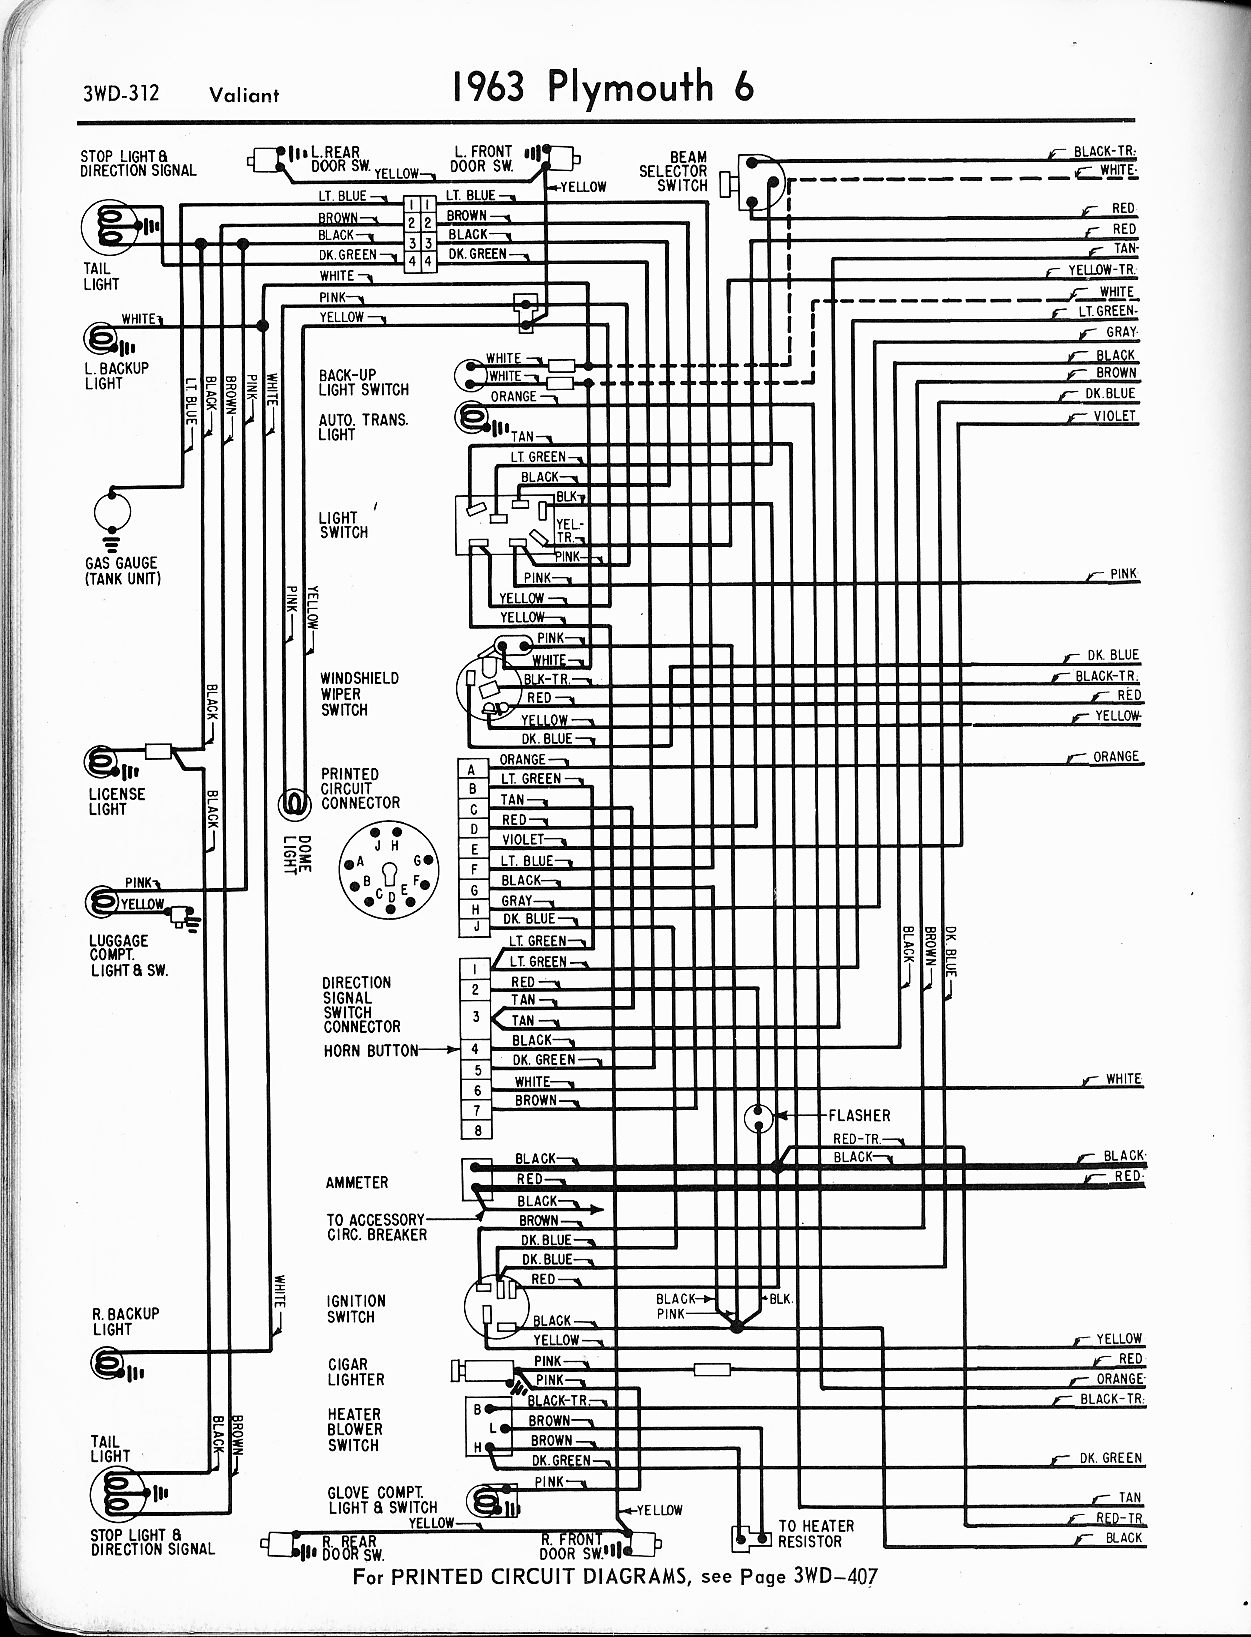 1963 Dodge Dart Wiring Diagram Library 1956 1965 Plymouth The Old Car Manual Project Rh Oldcarmanualproject Com